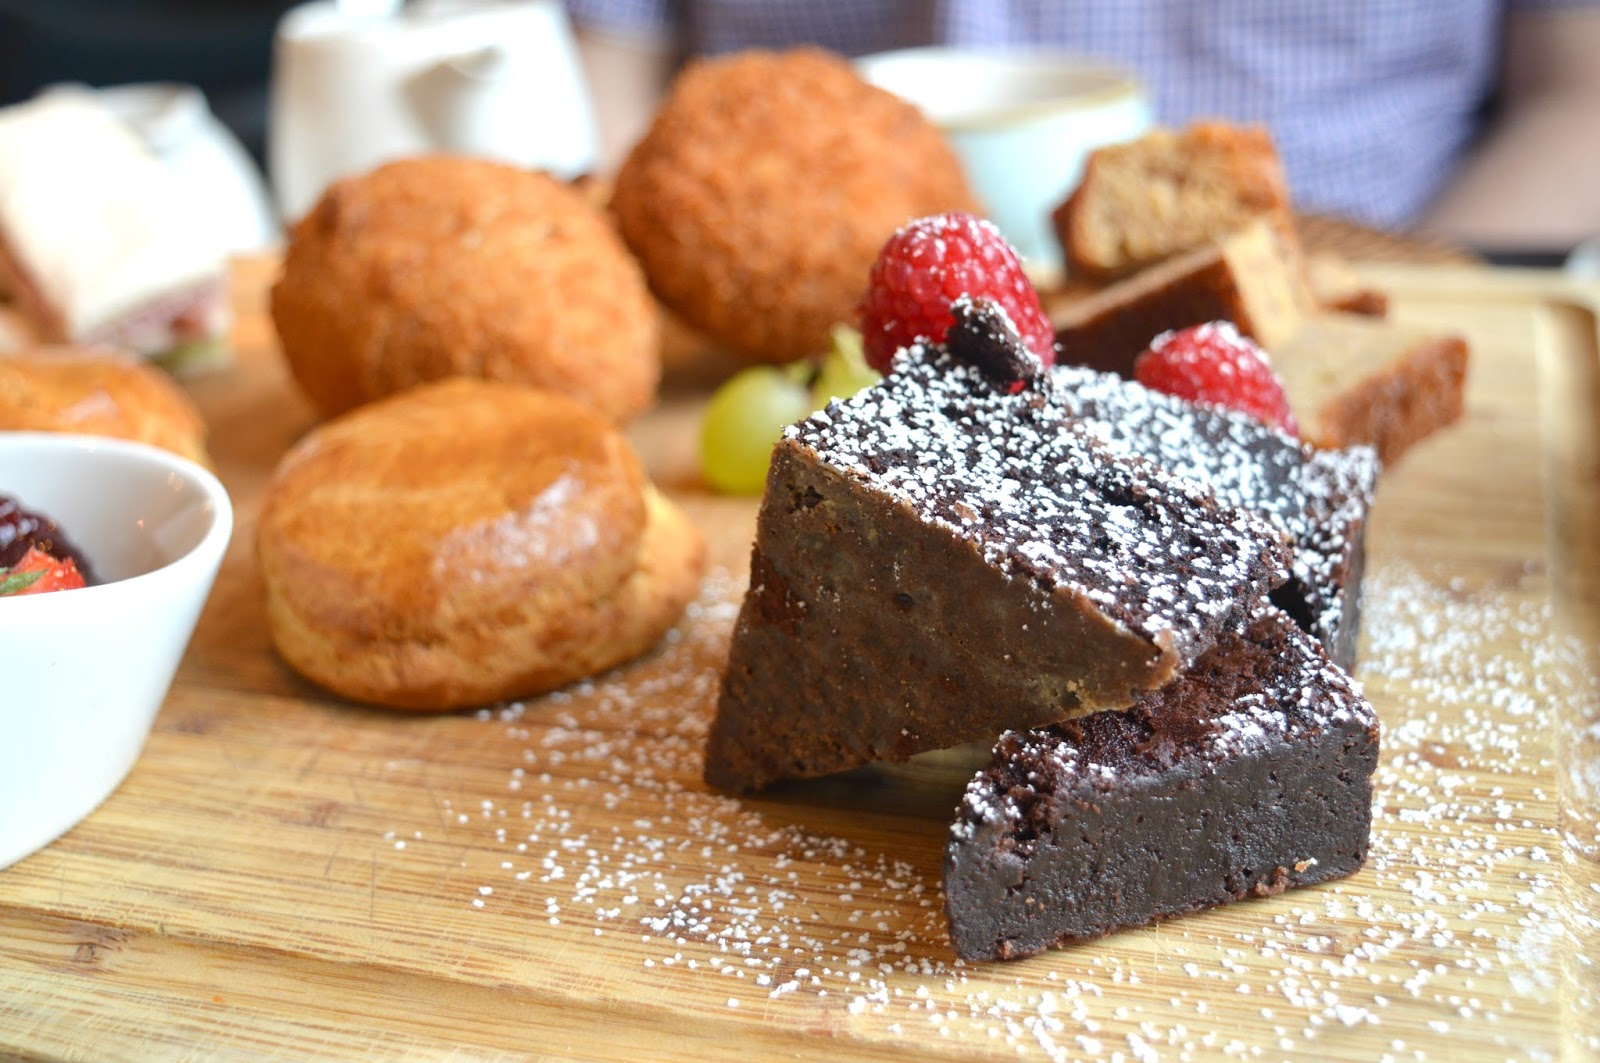 Afternoon Tea at The Painswick Hotel  - Brownie